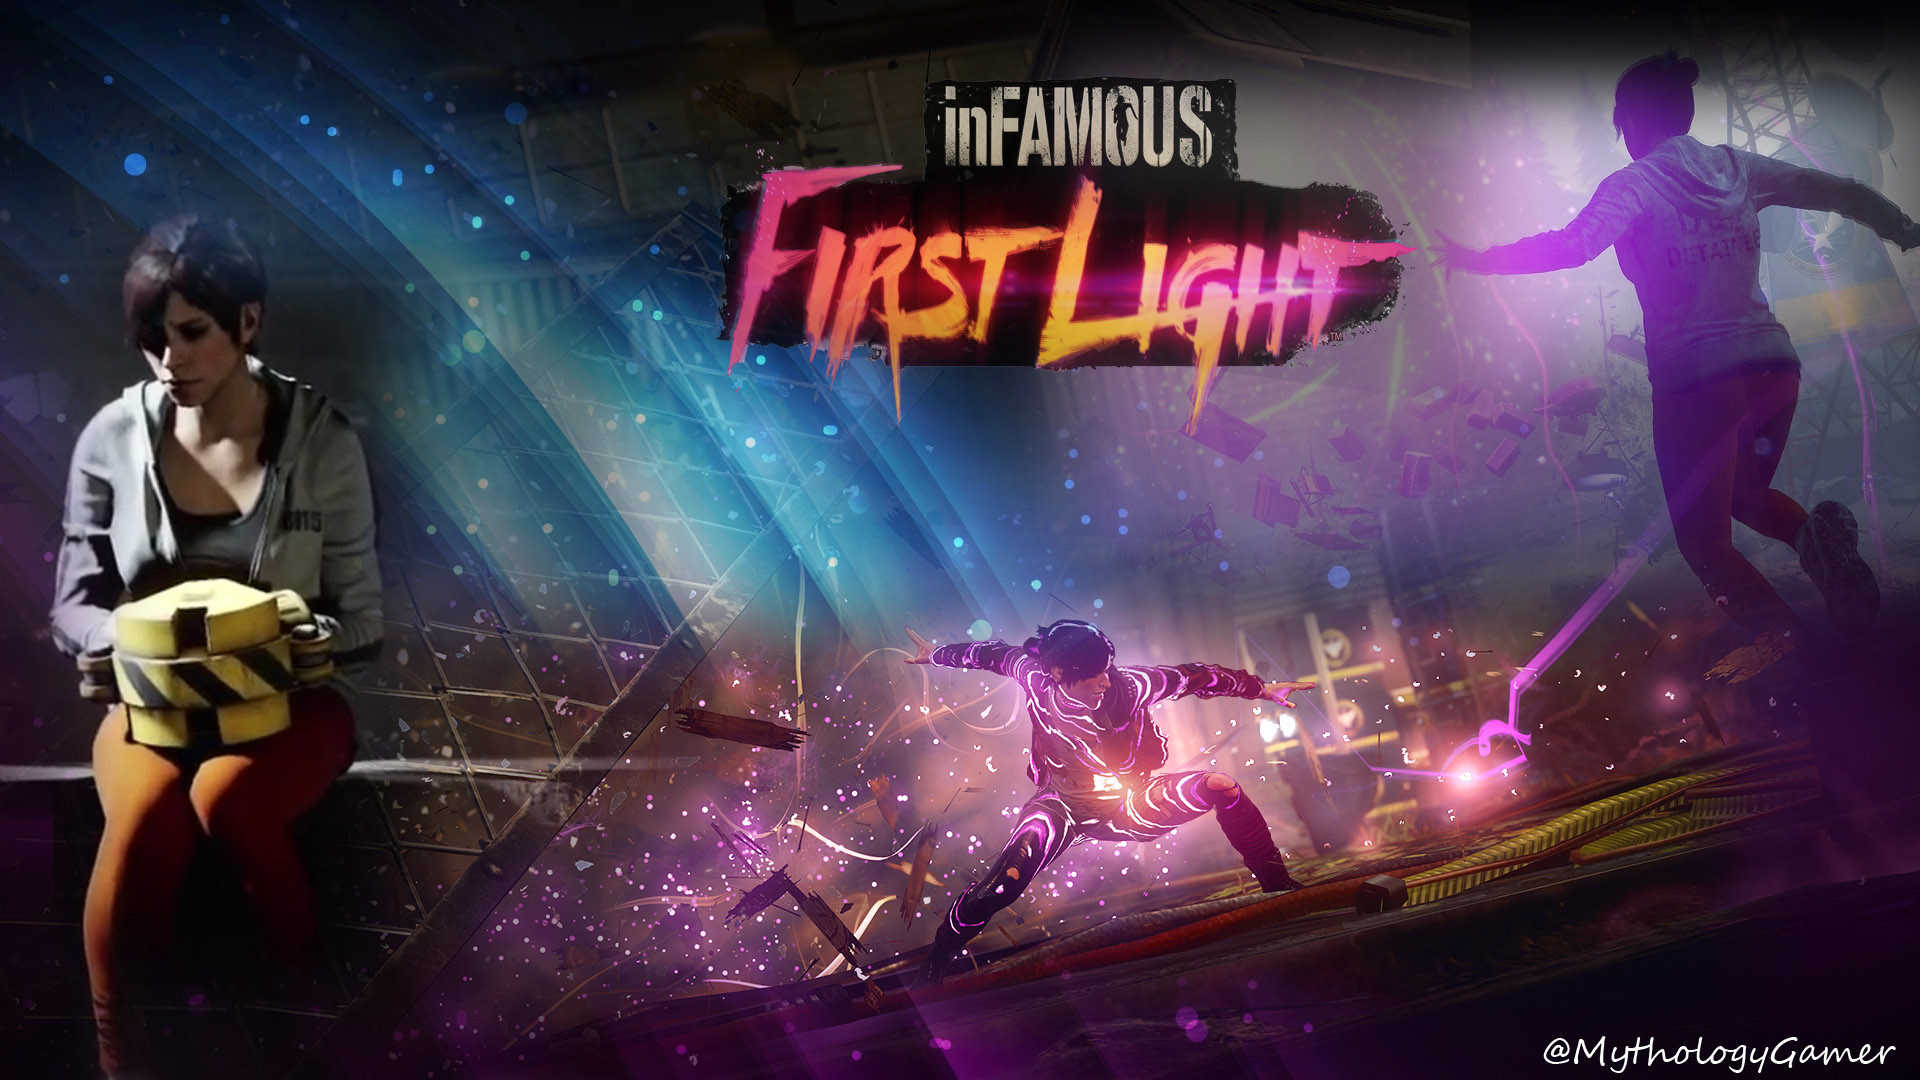 1920x1080 inFAMOUS: First Light HD Wallpapers